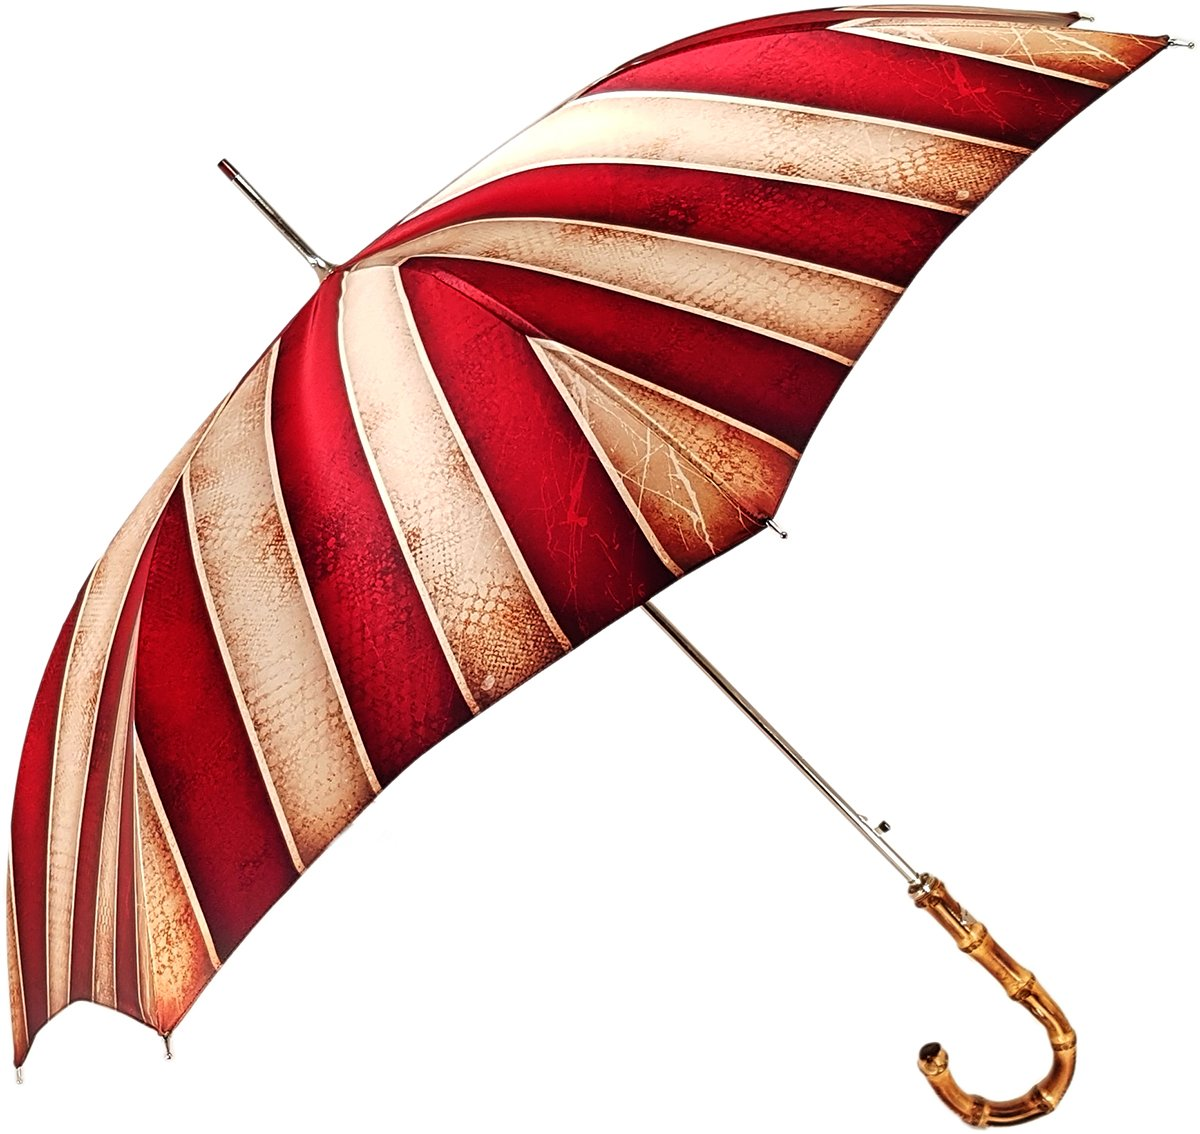 Classic Striped Men's Umbrella - Bamboo Handle - New Exclusive Design - il-marchesato